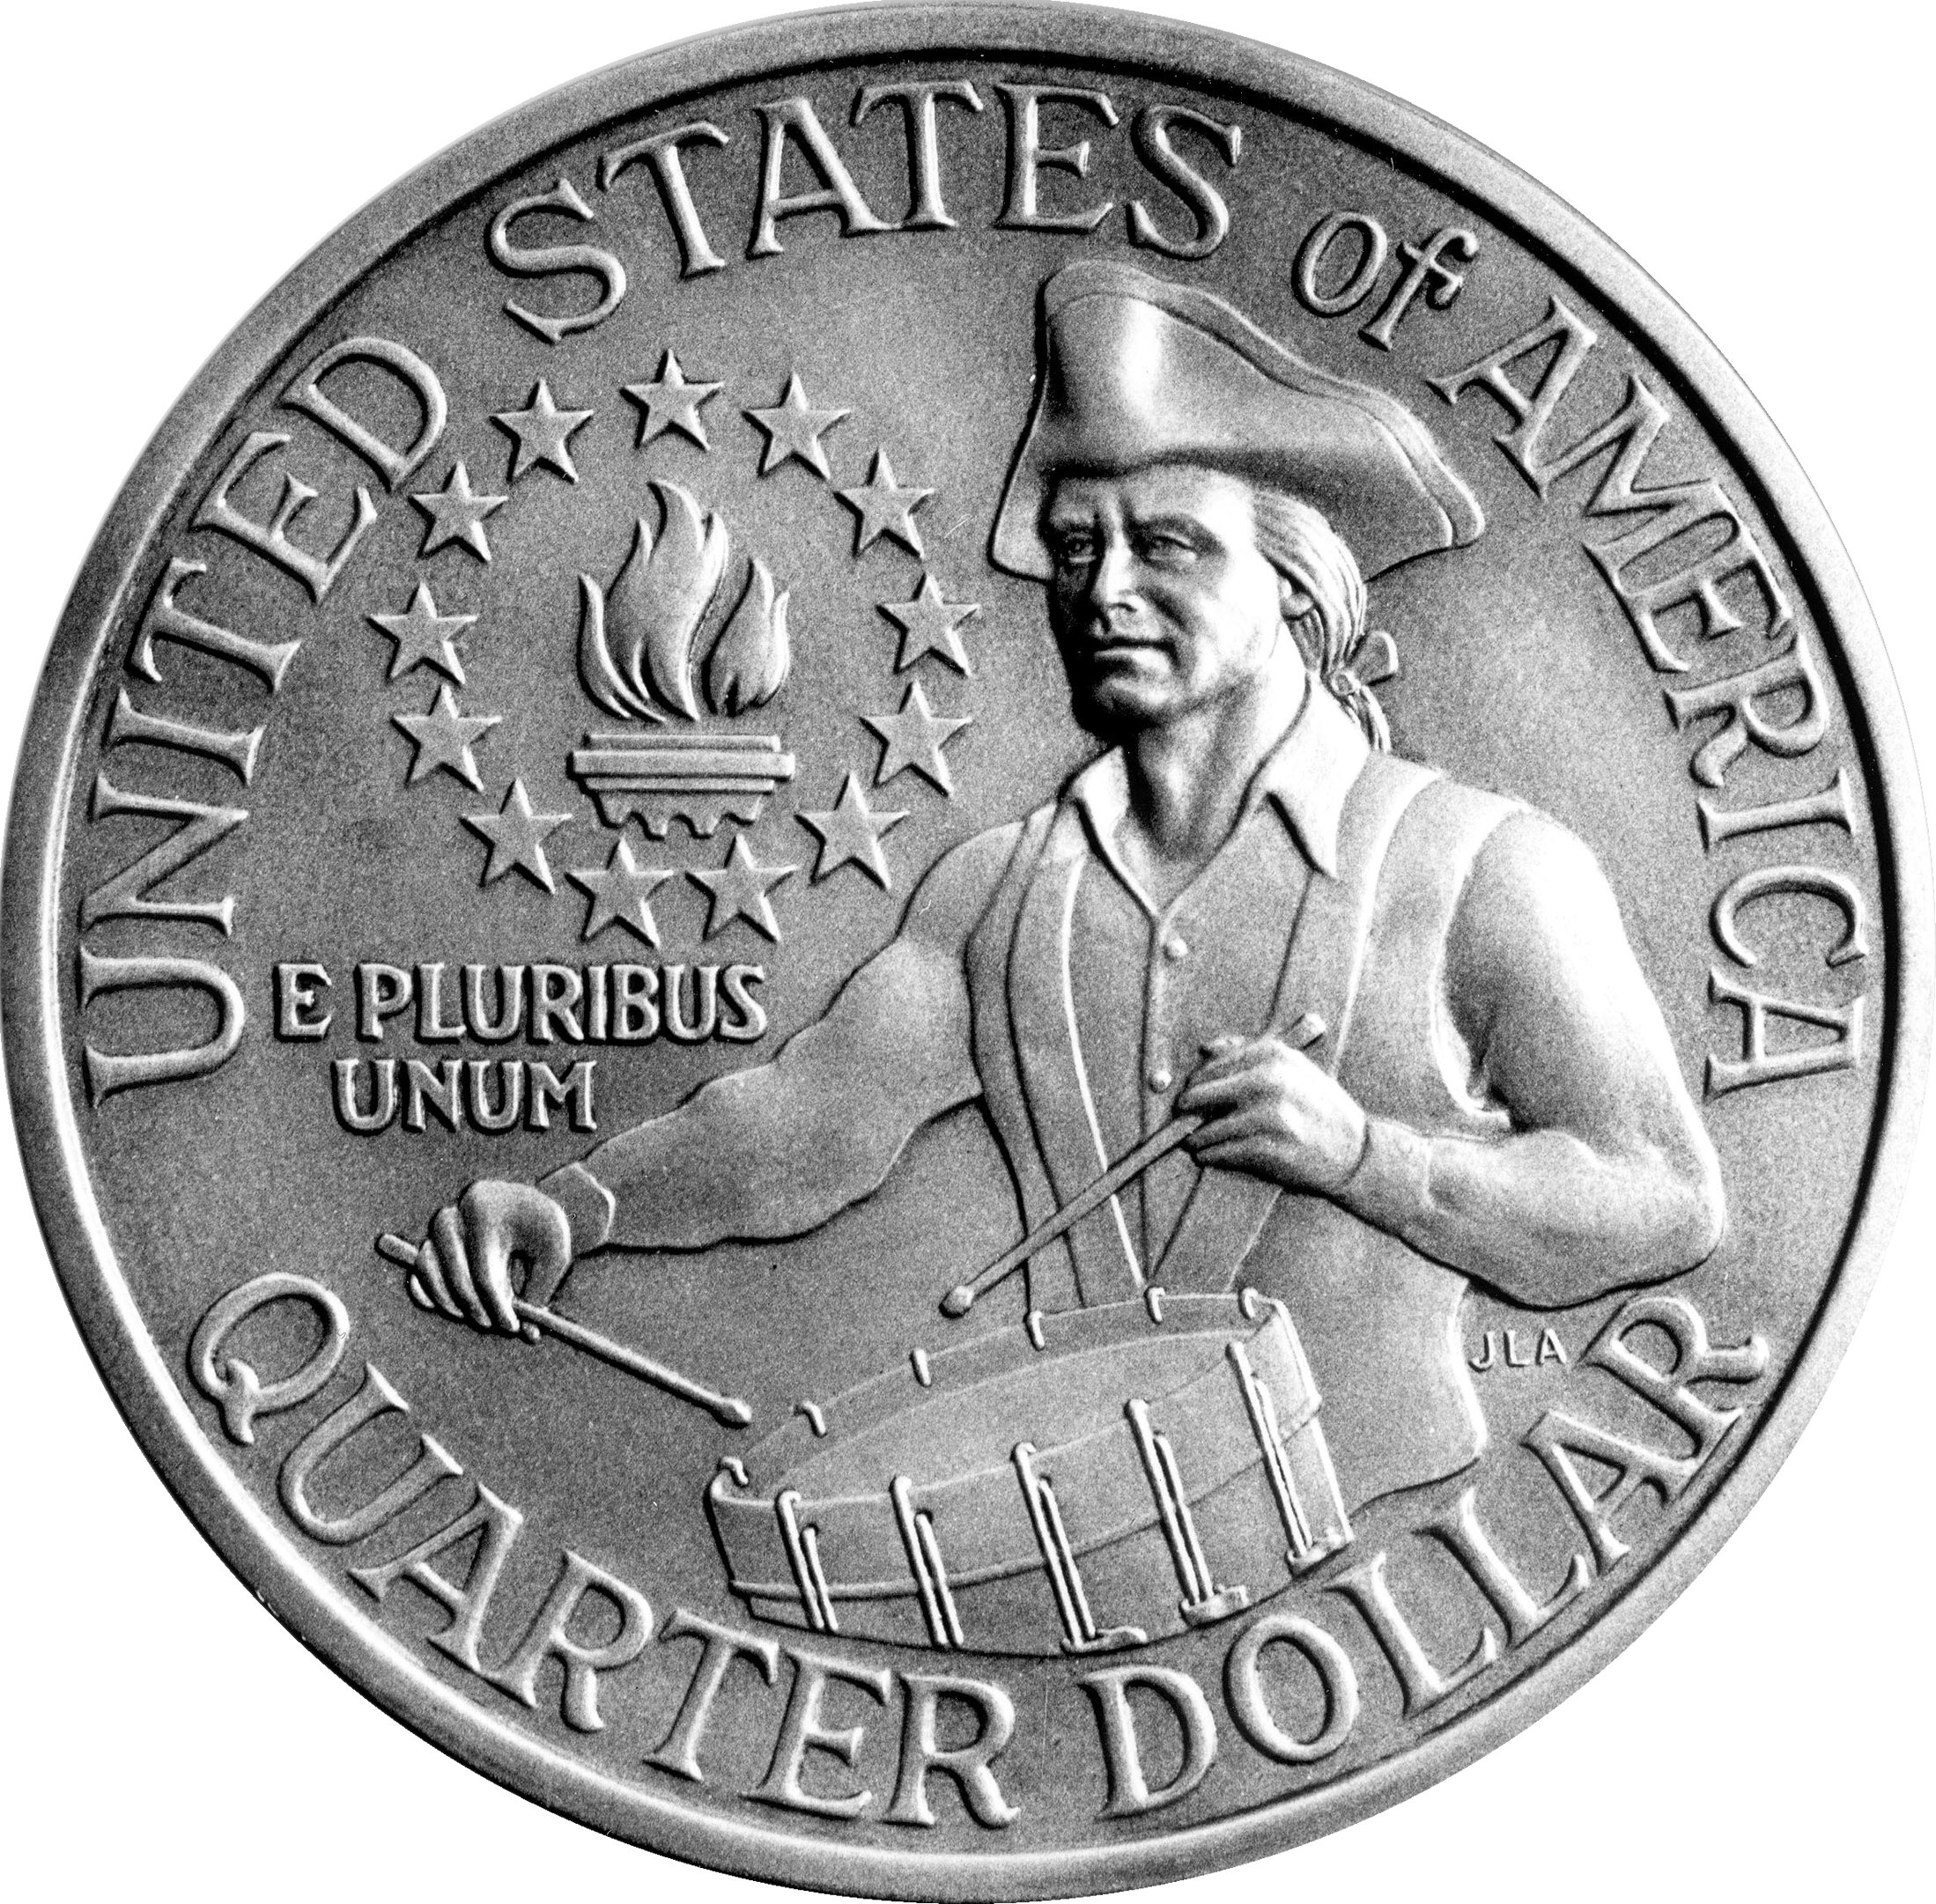 Old Quarter Dollar Coins http://thecoinologist.com/2008/05/25/flashback-to-1975-76/